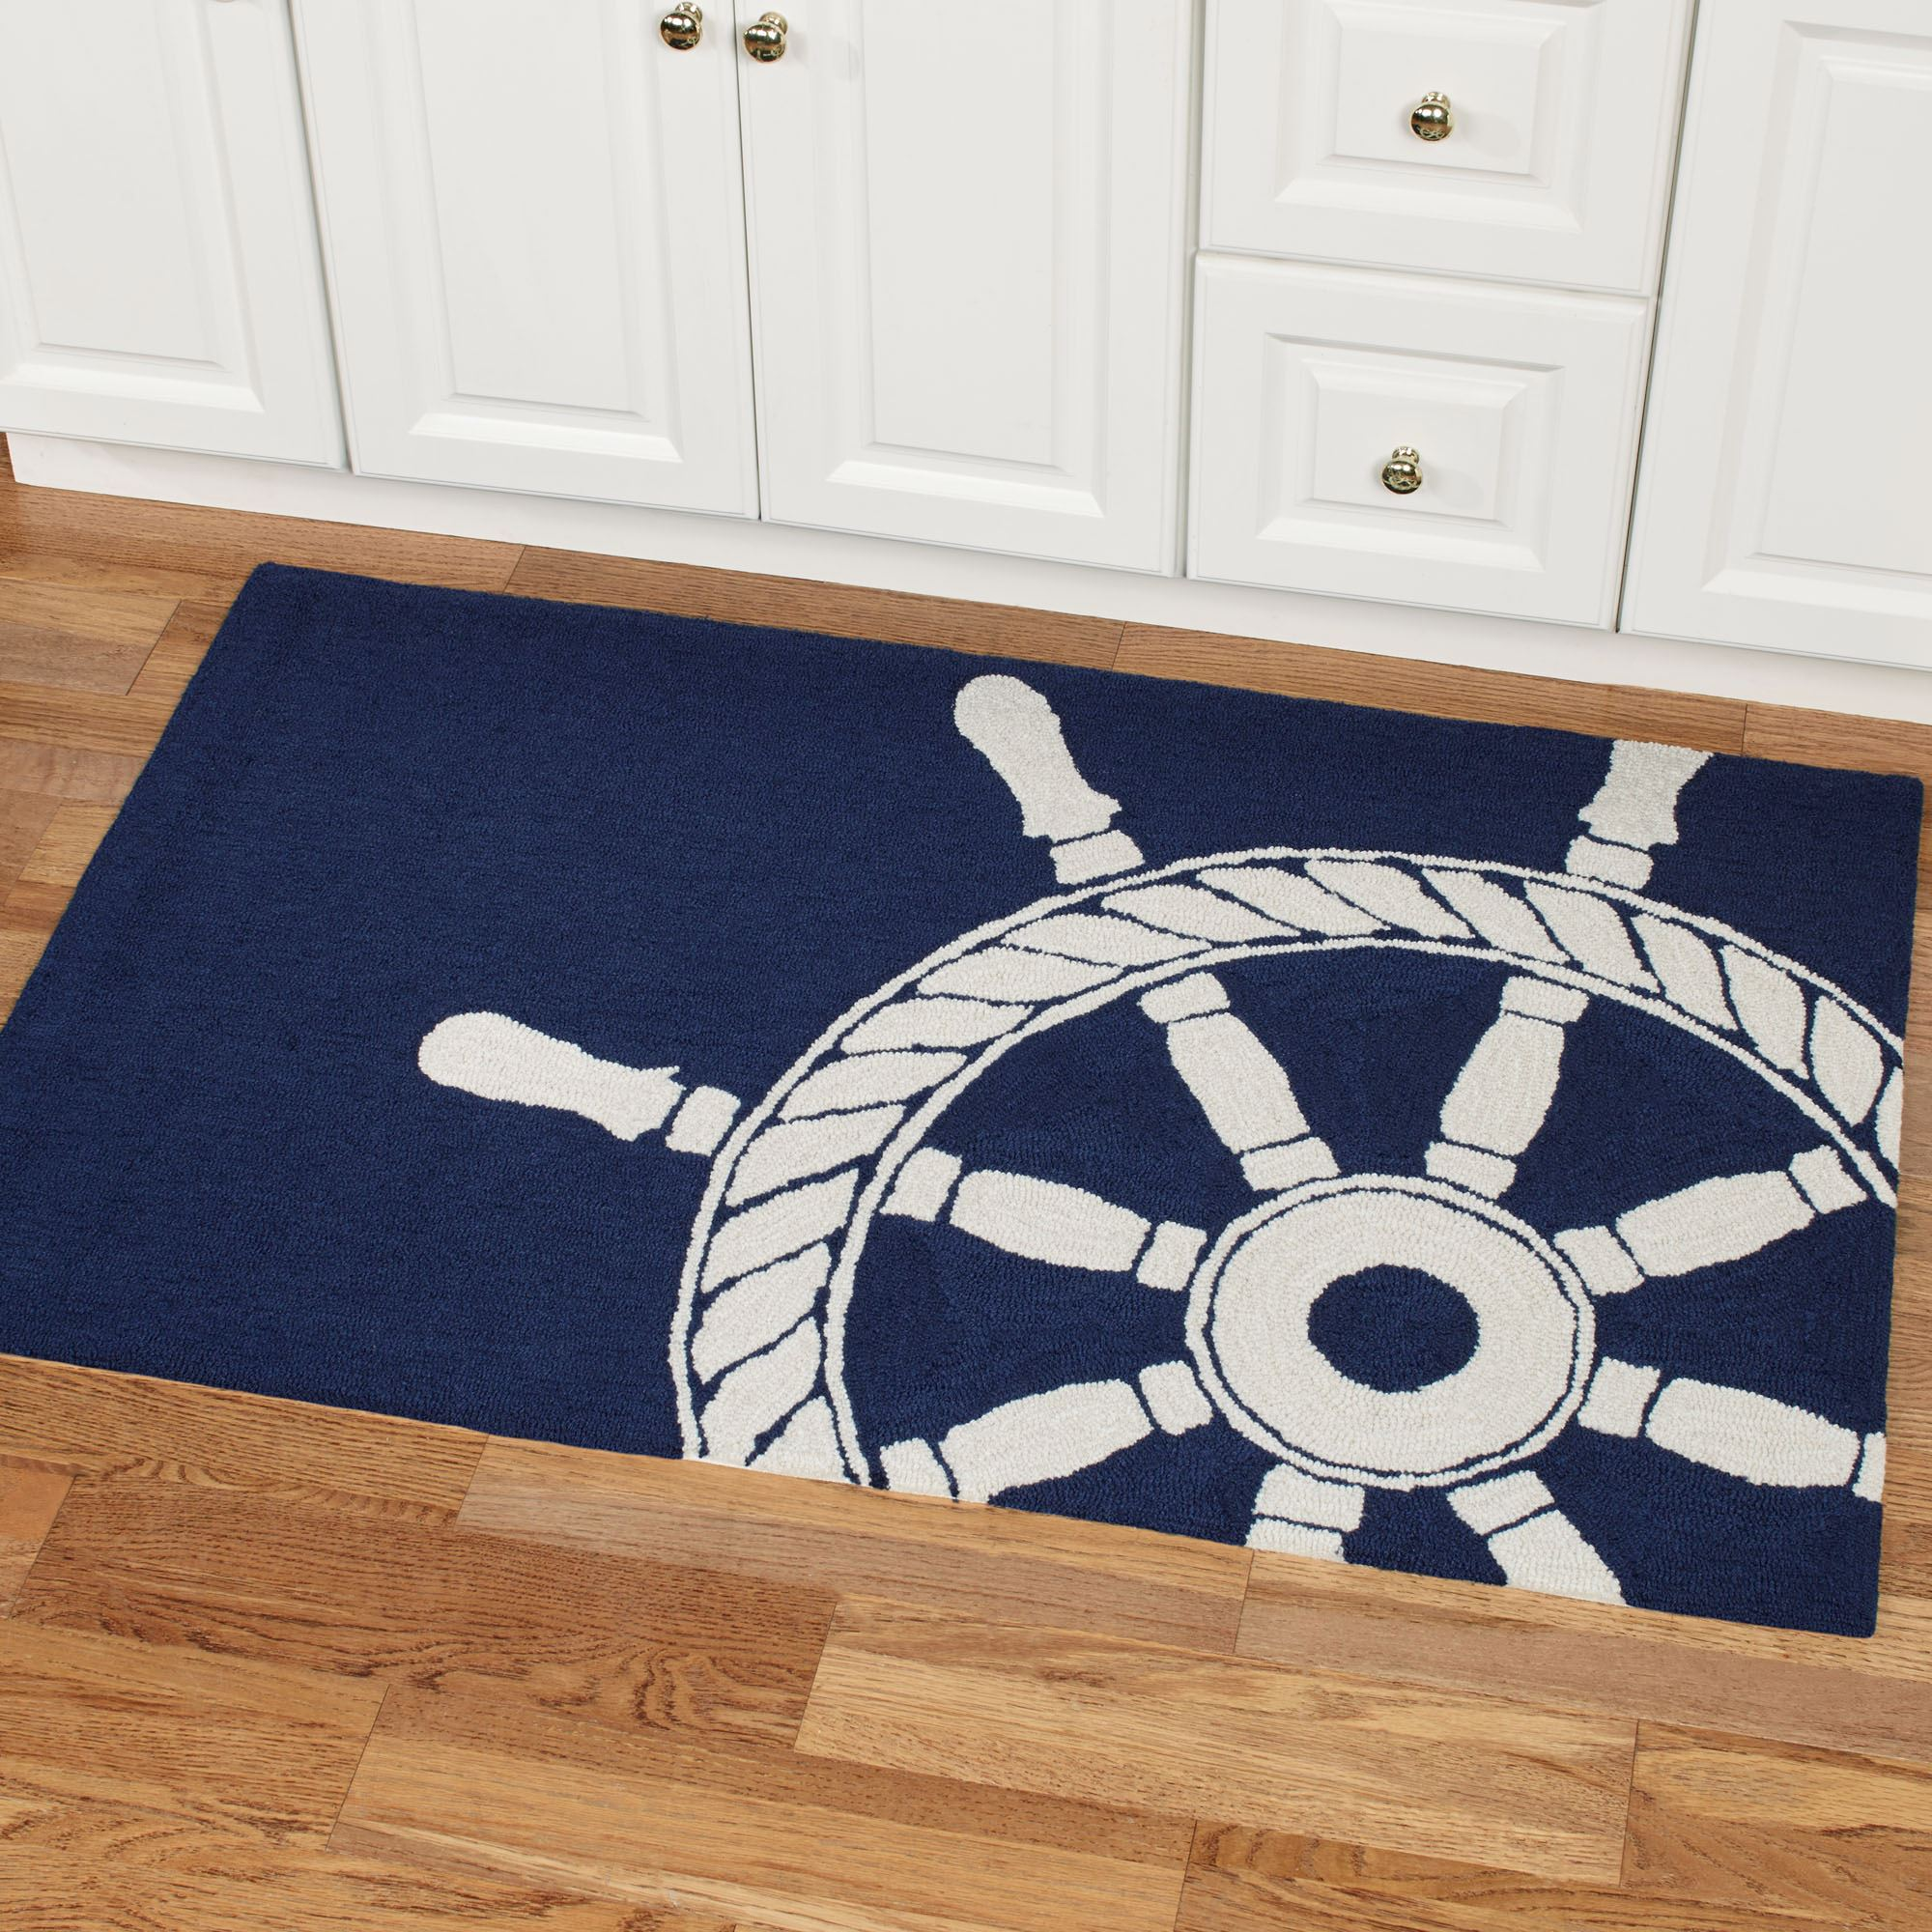 xxx rugs nautical rug area do tree product all weather christmas anchors